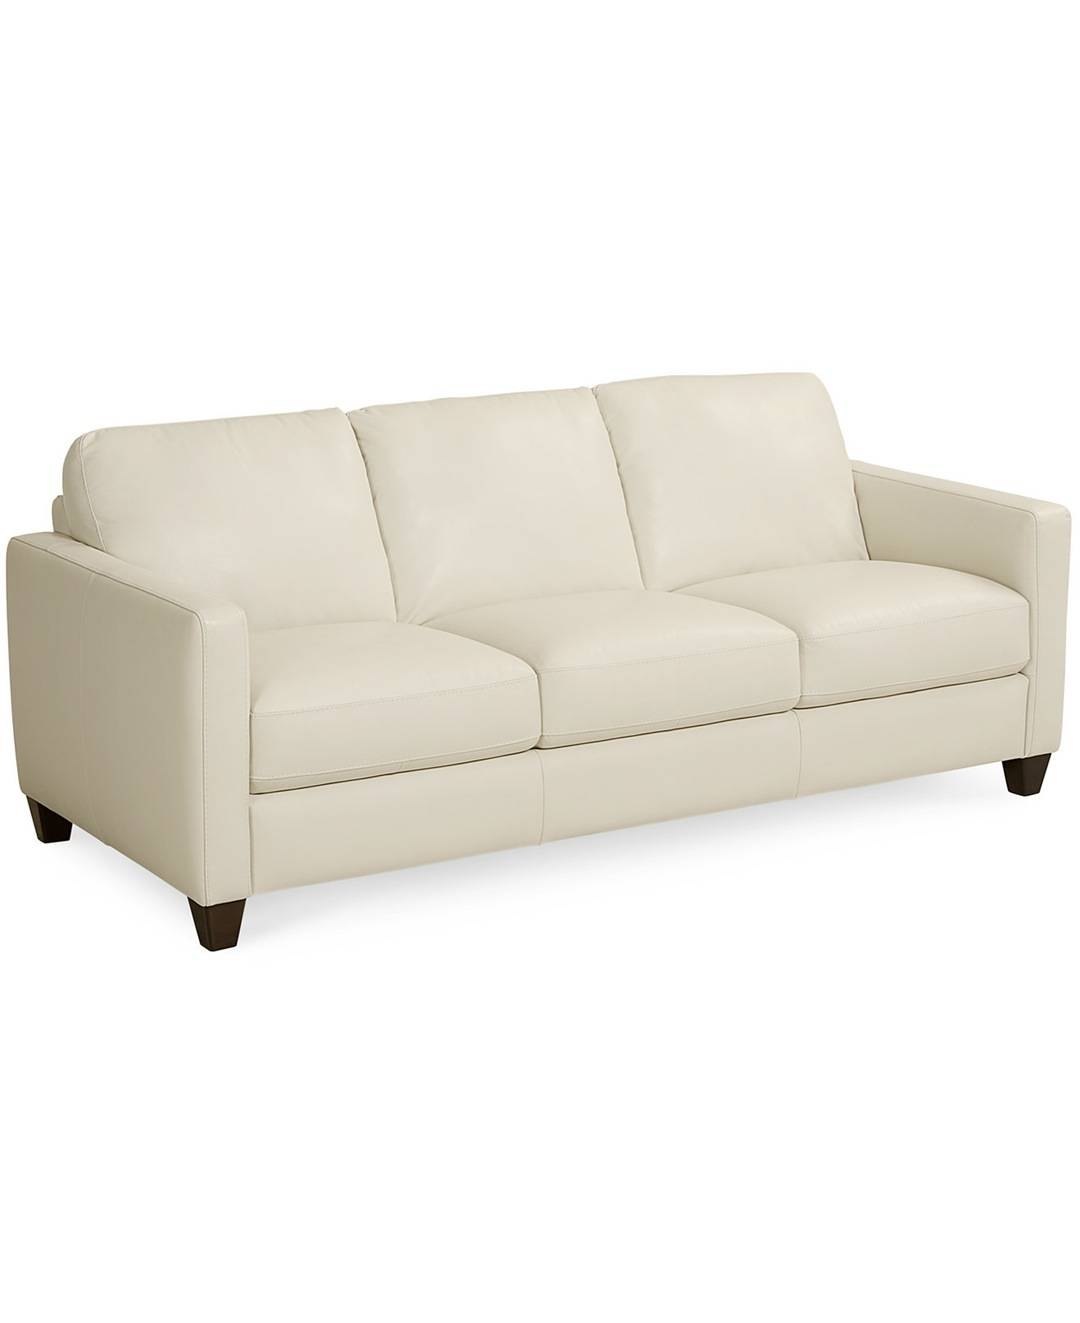 Sofas Center : Impressive Macys Leather Sofa Image Ideas Blair With Regard To Macys Sofas (Photo 15 of 25)